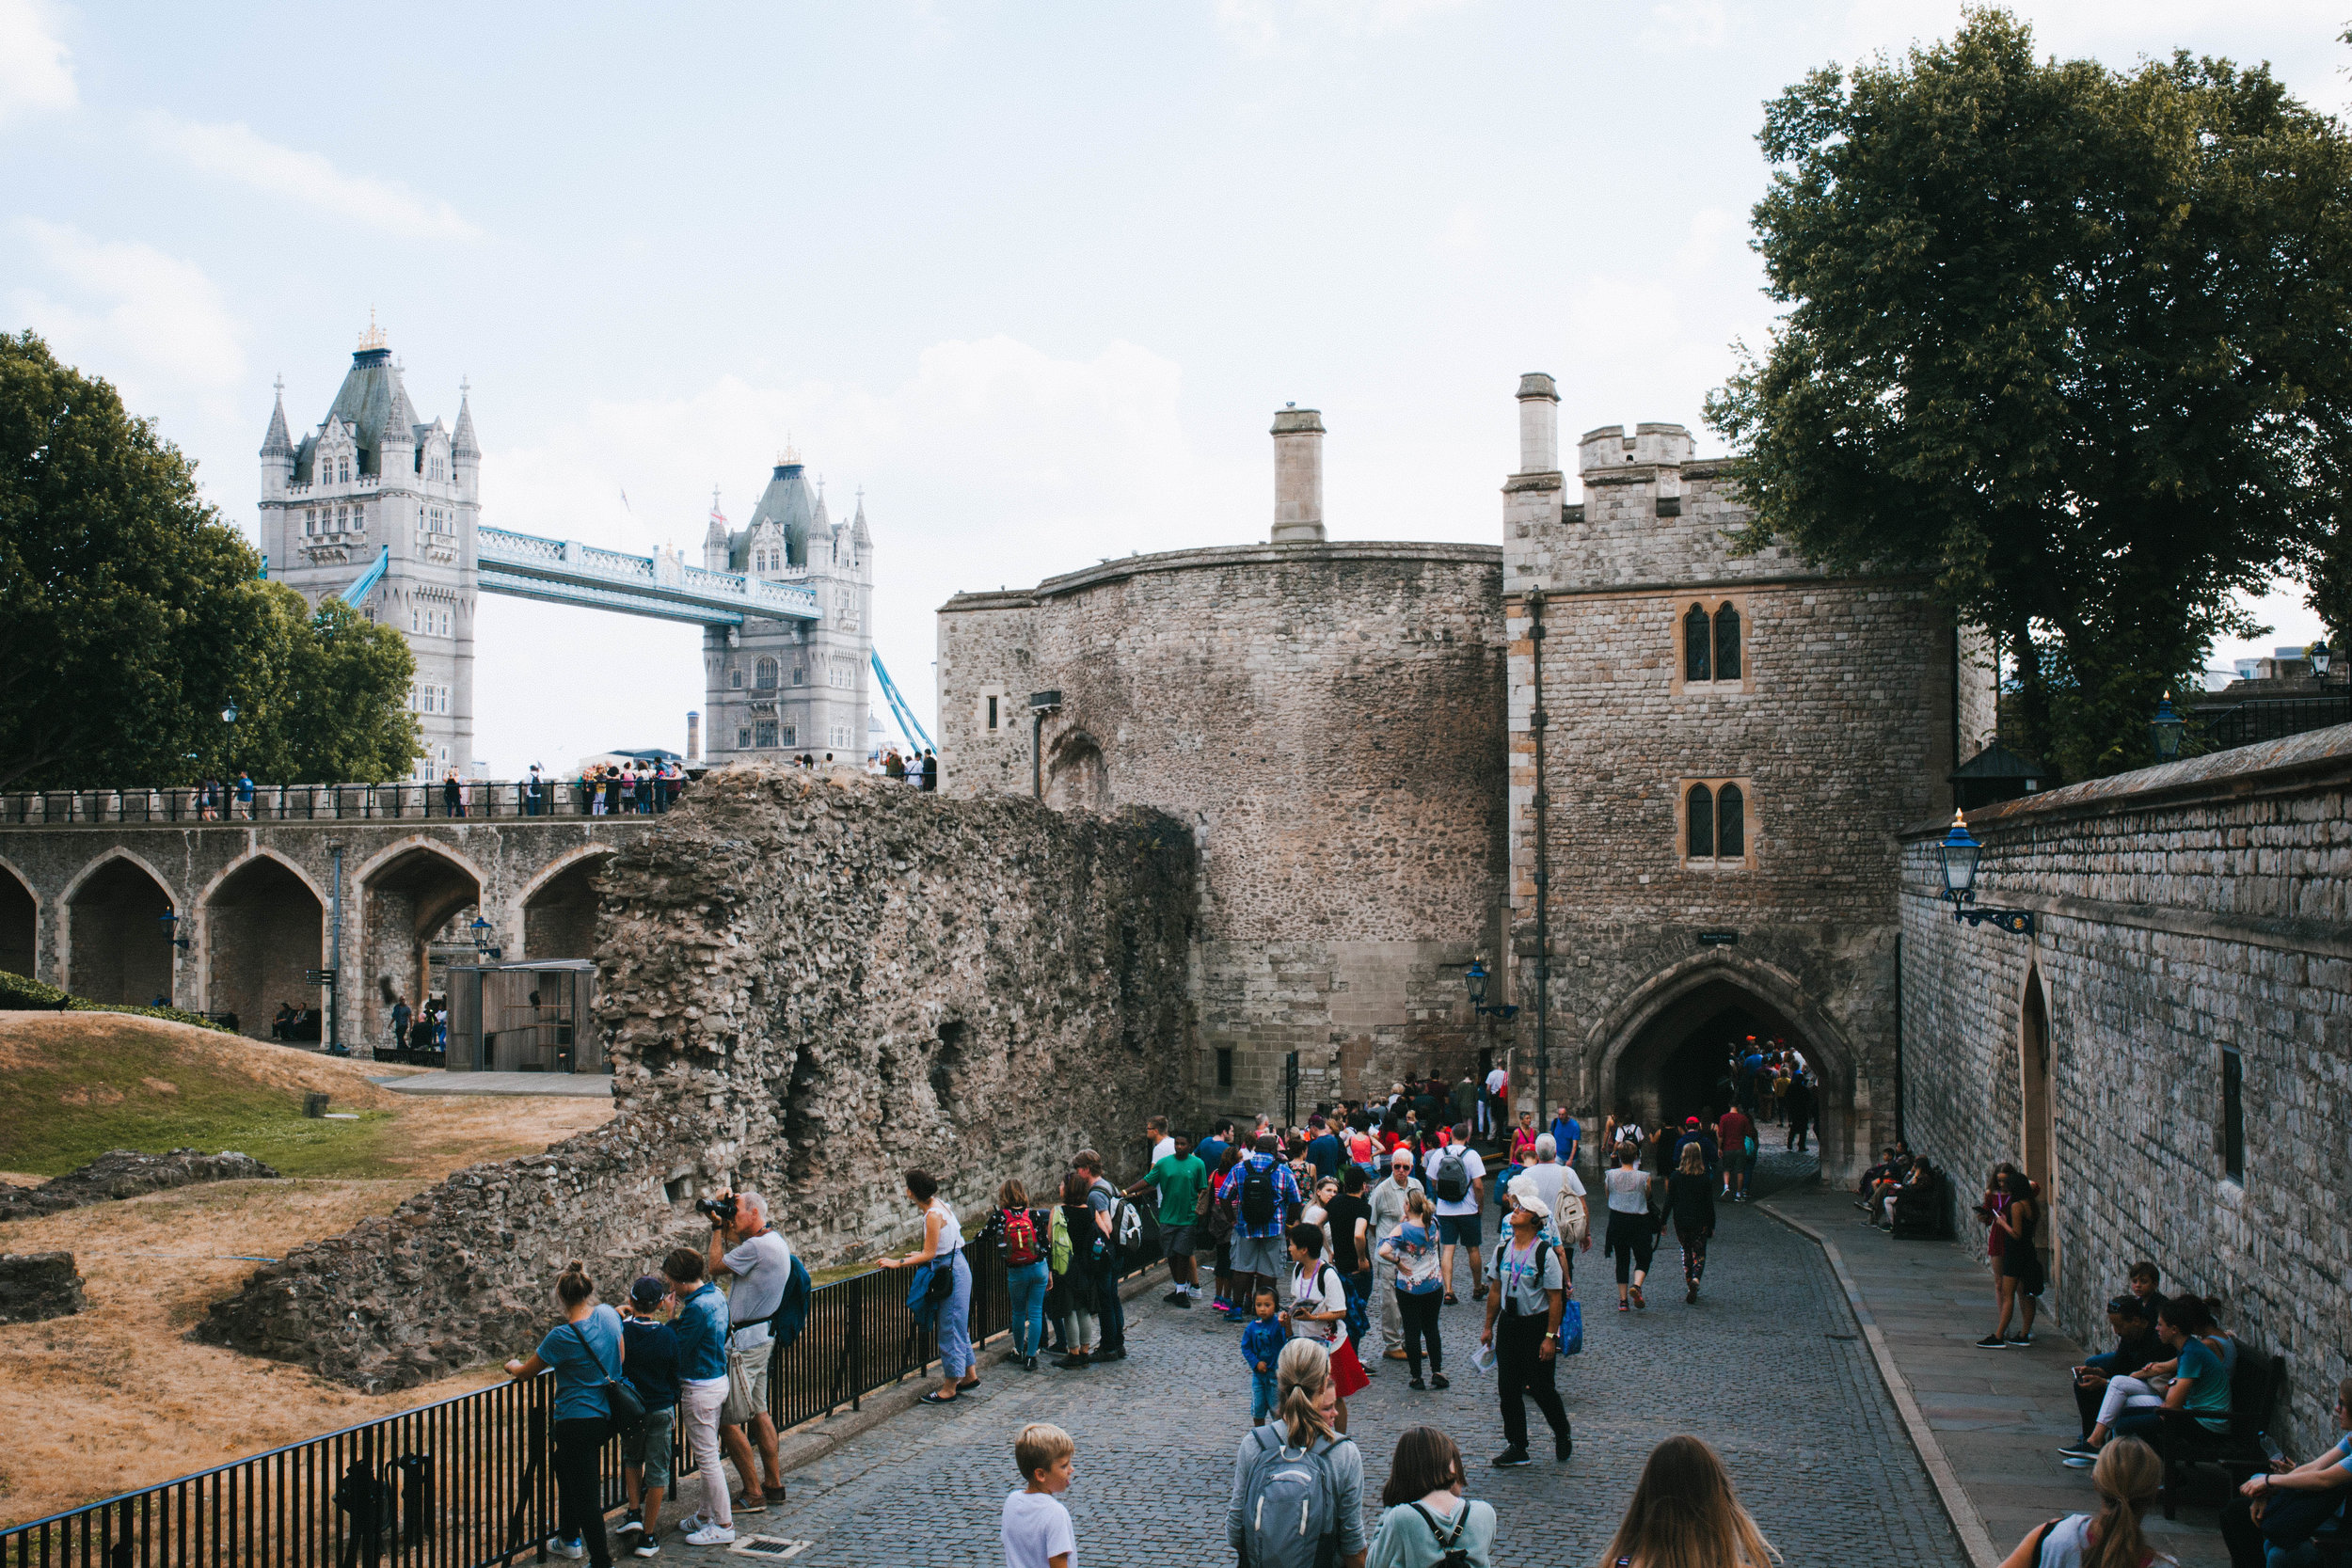 View of Tower Bridge from inside the Tour grounds